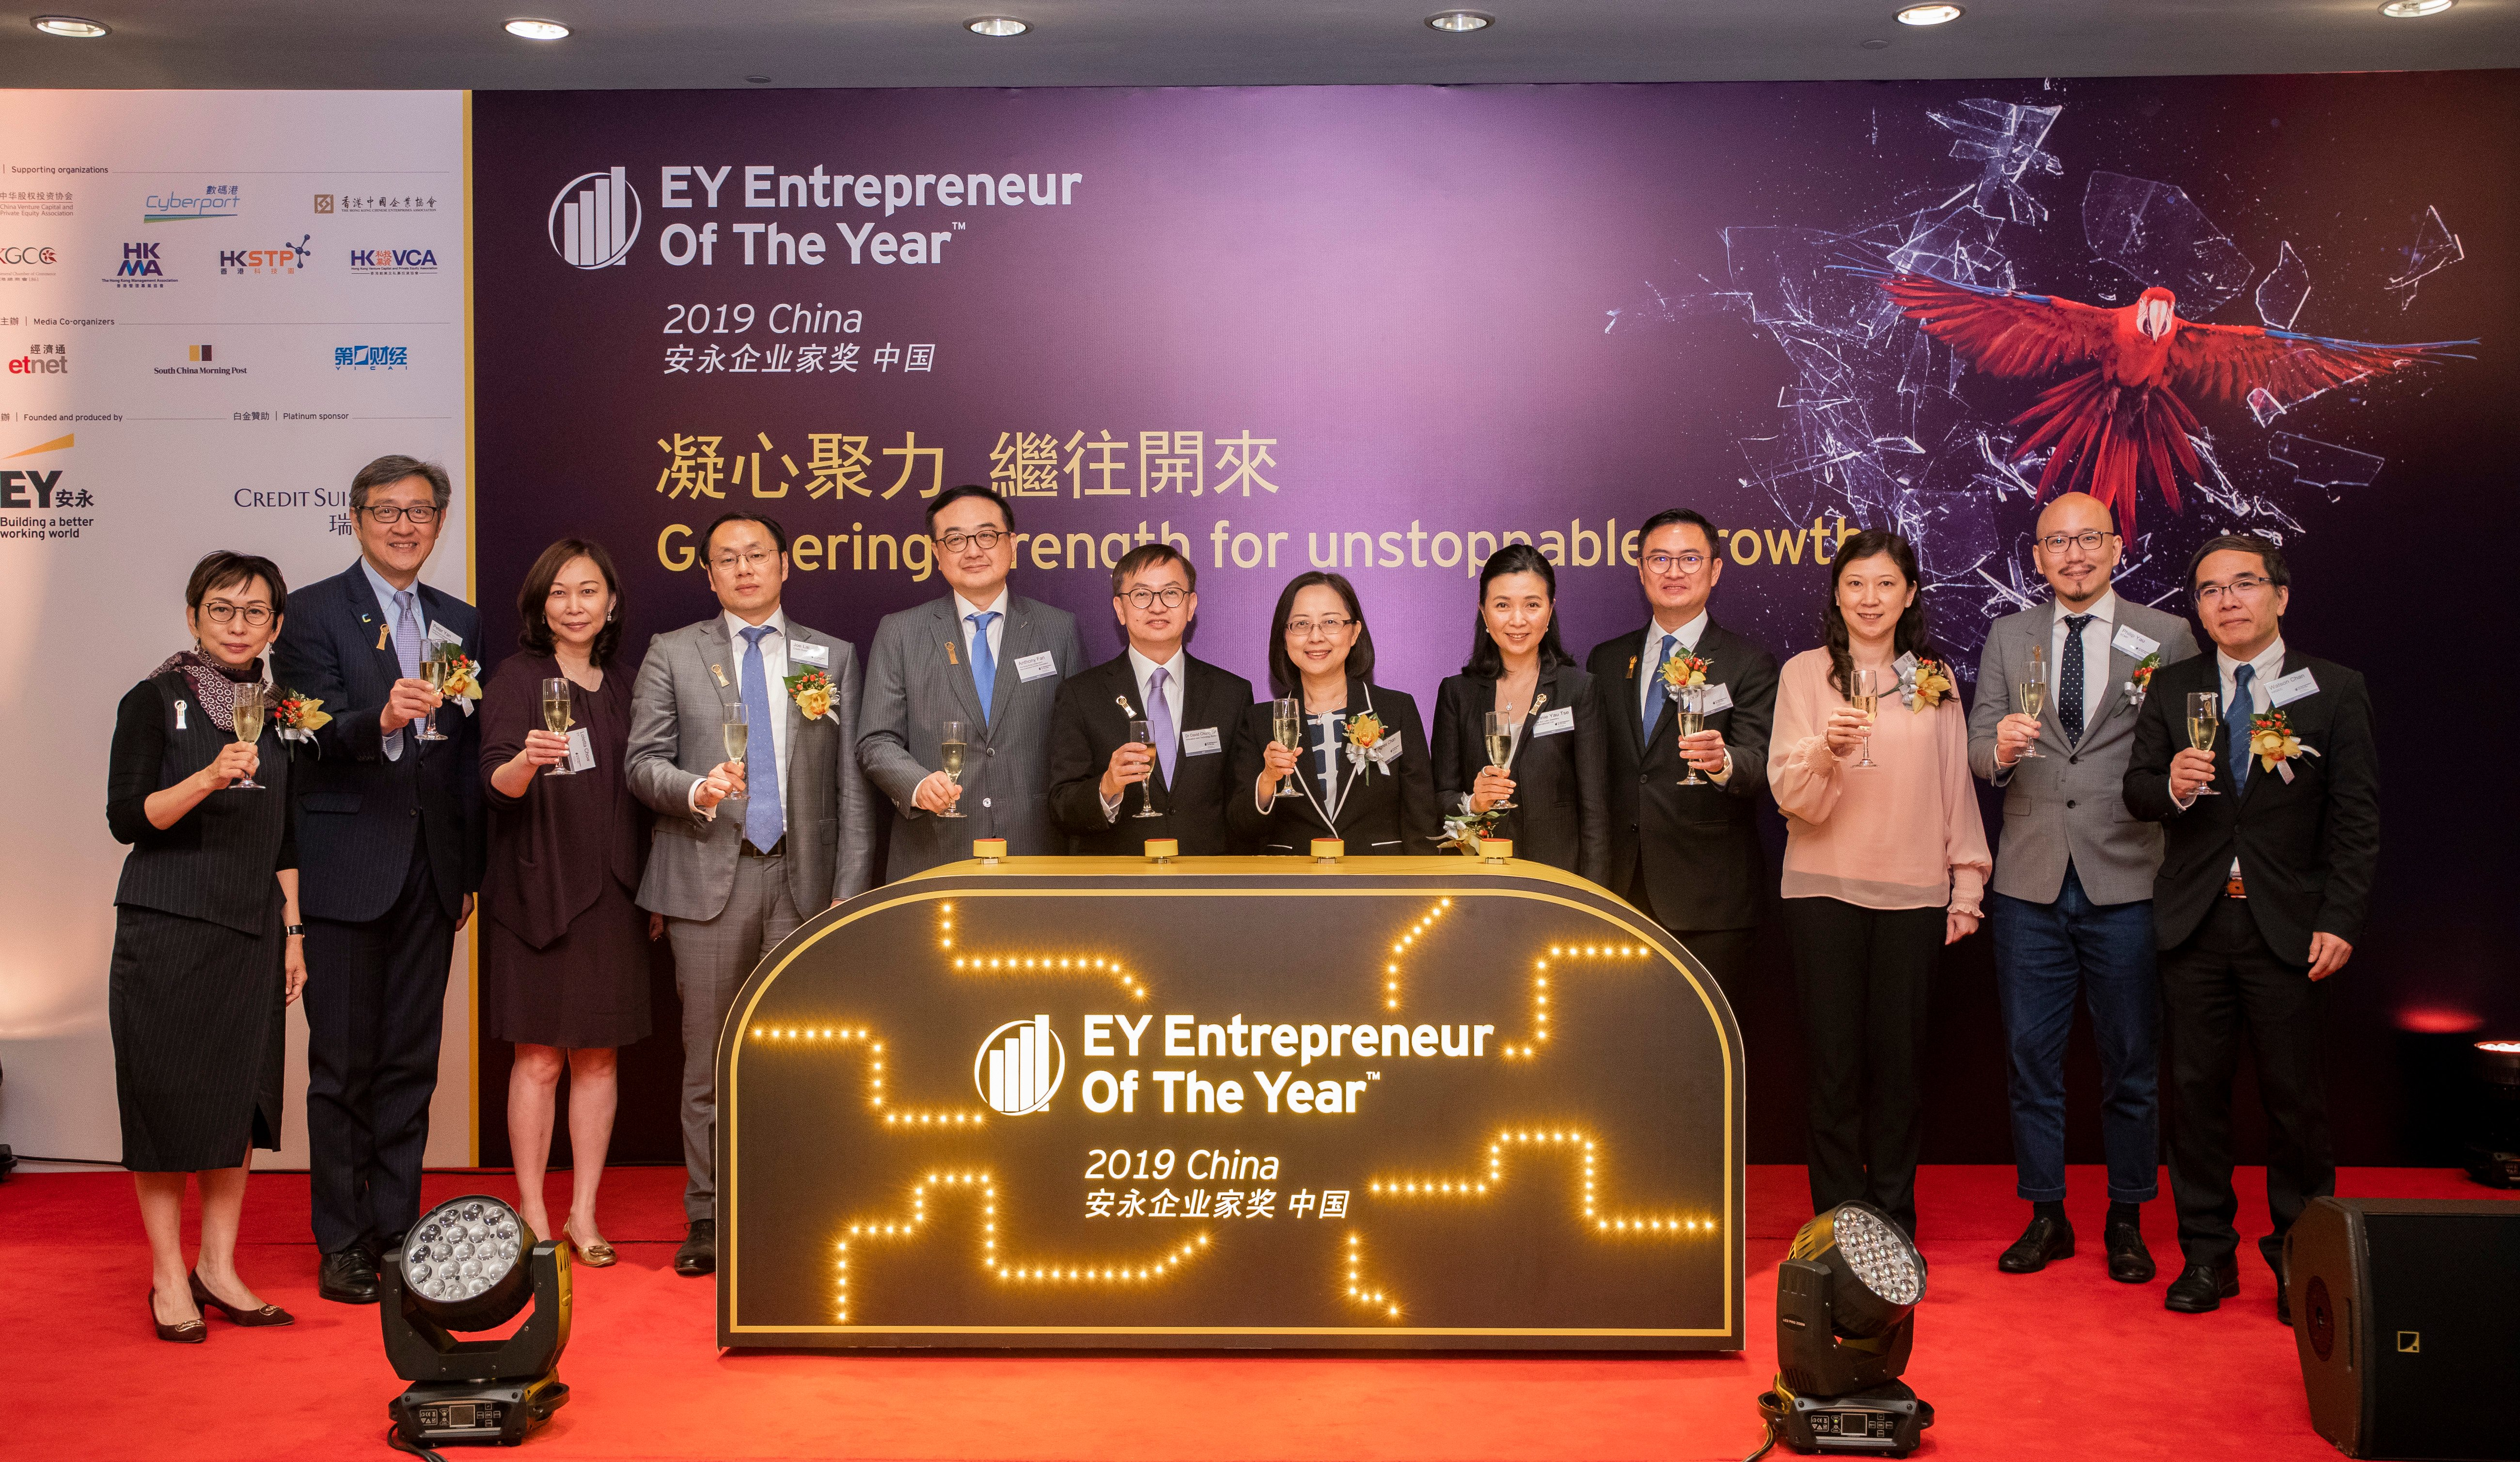 Outstanding entrepreneurs allow their talent to shine and inspire at